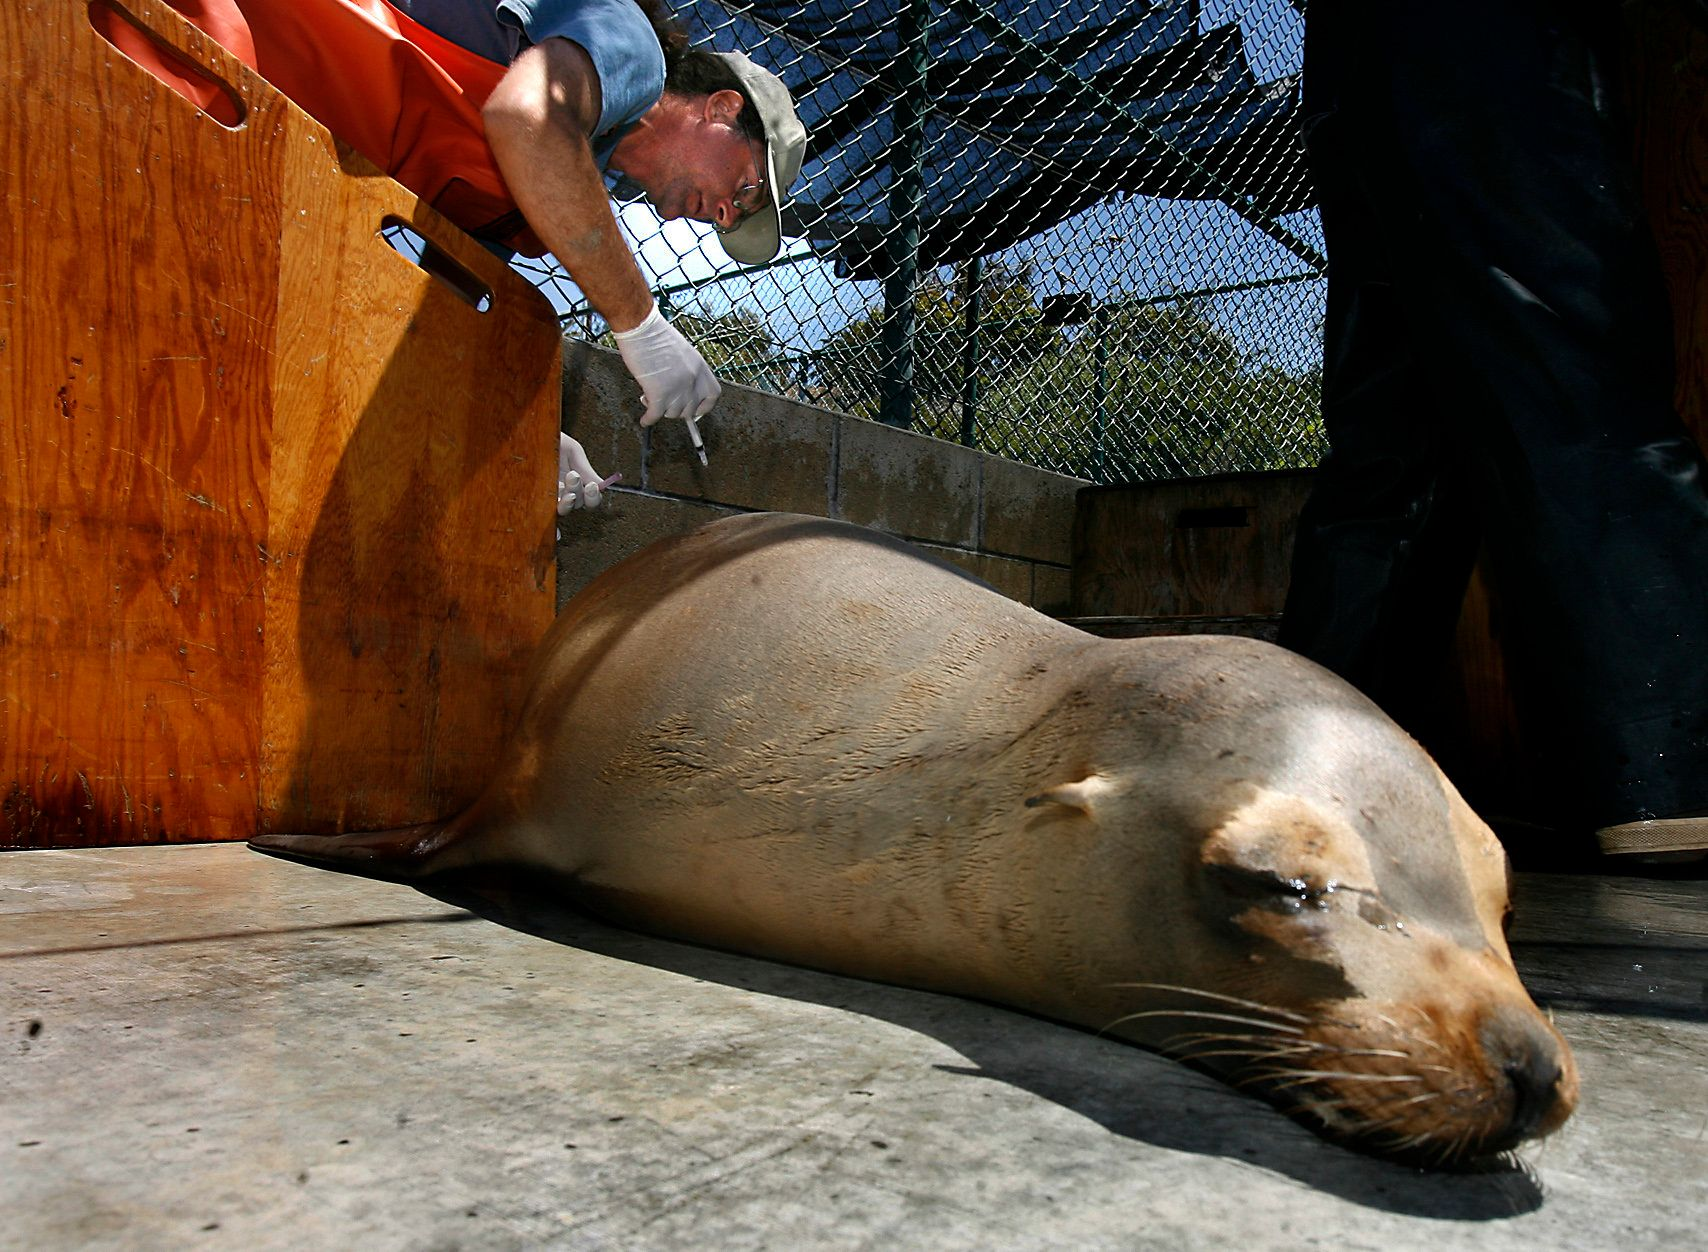 San Pedro, Ca. – David Bard, Operations Director at the Marine Mammal Care Center in San Pedro, injects a sea lion suffering from seizures related to domoic acid poisoning with an anti–convulsive drug while the animal rehabilitates from the effects of the poisoning. Several sea lions were in recovery at the center on Wednesday.  (Photo by Rick Loomis/Los Angeles Times via Getty Images)